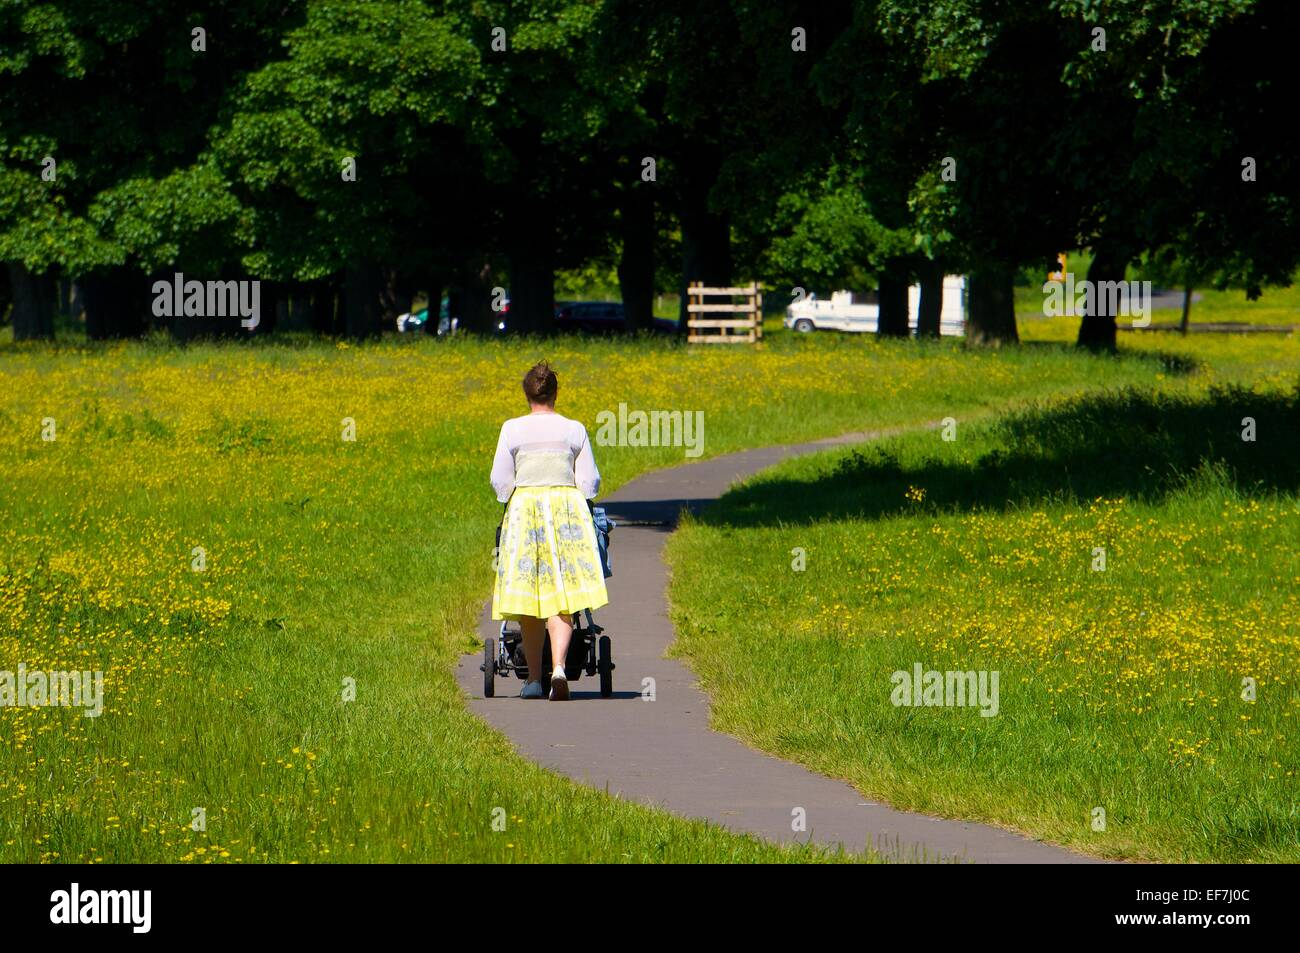 Woman pushing a pram on a footpath through a grass field with buttercups in a park. - Stock Image